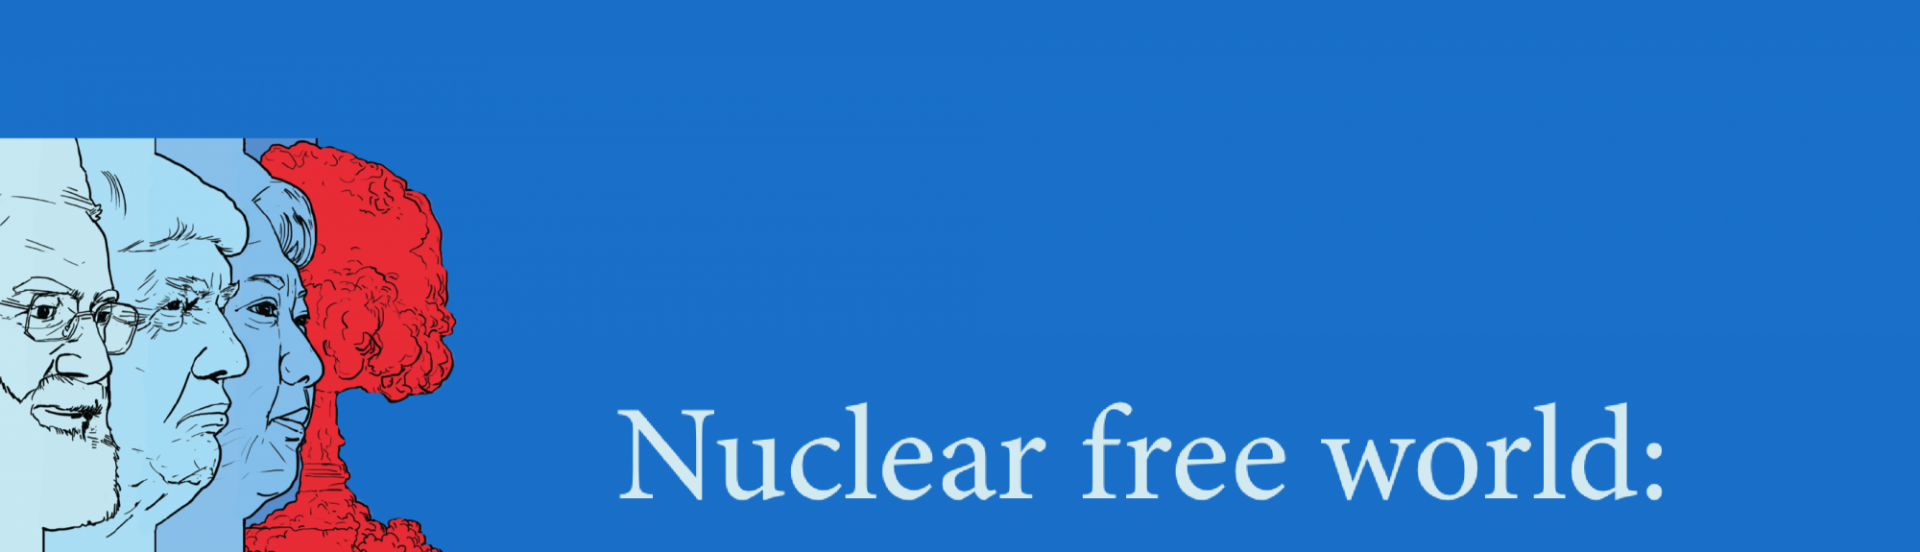 effects of nuclear weapons on american foreign policy history essay Nuclear weapons are the greatest threat to humankind no but you might think so if you listen to world leaders right now in his first address to the un security council, us president .